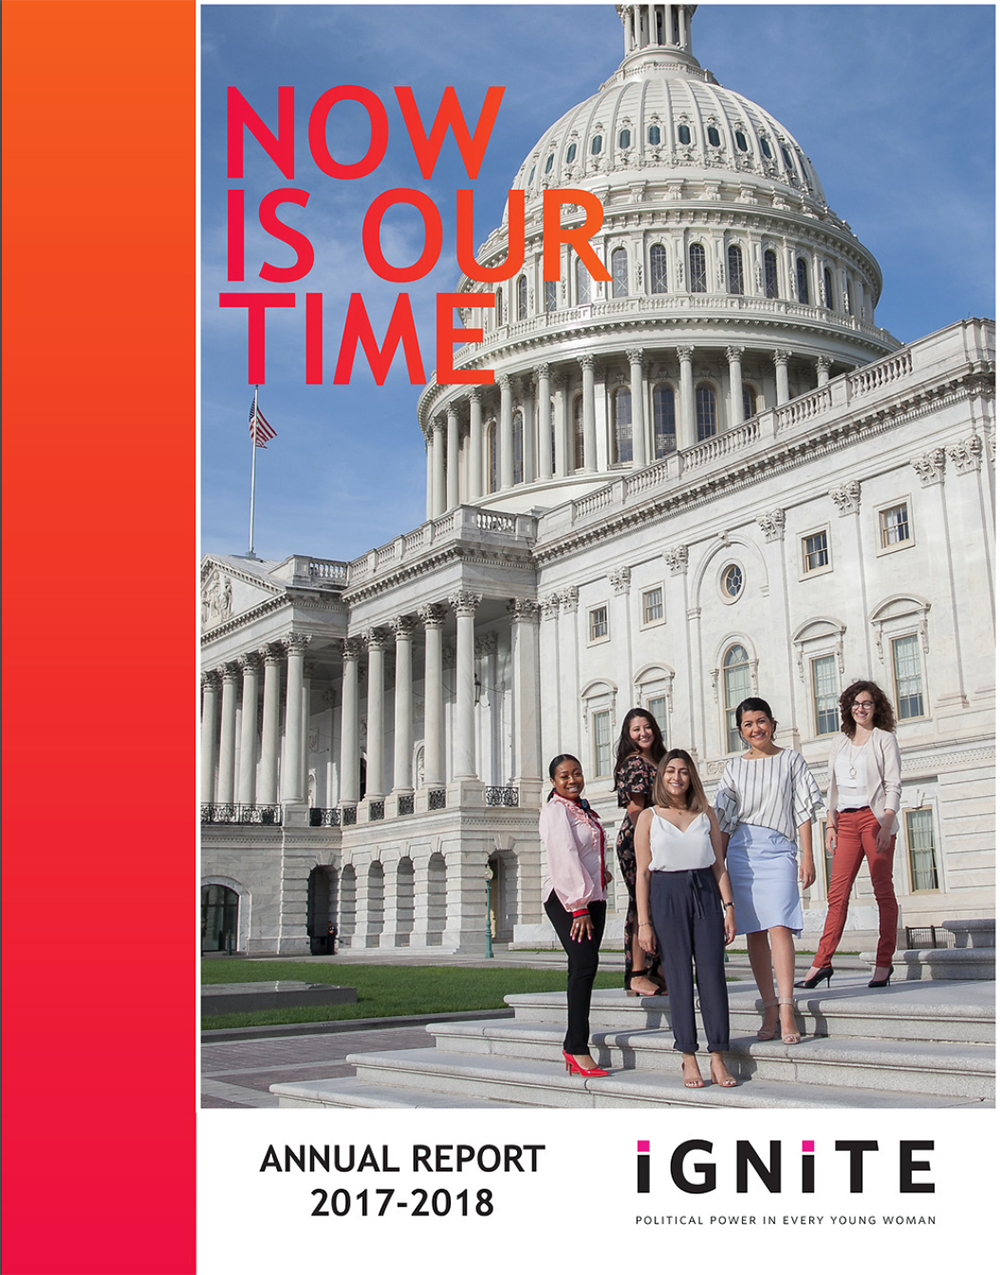 ignite national annual report now is our time